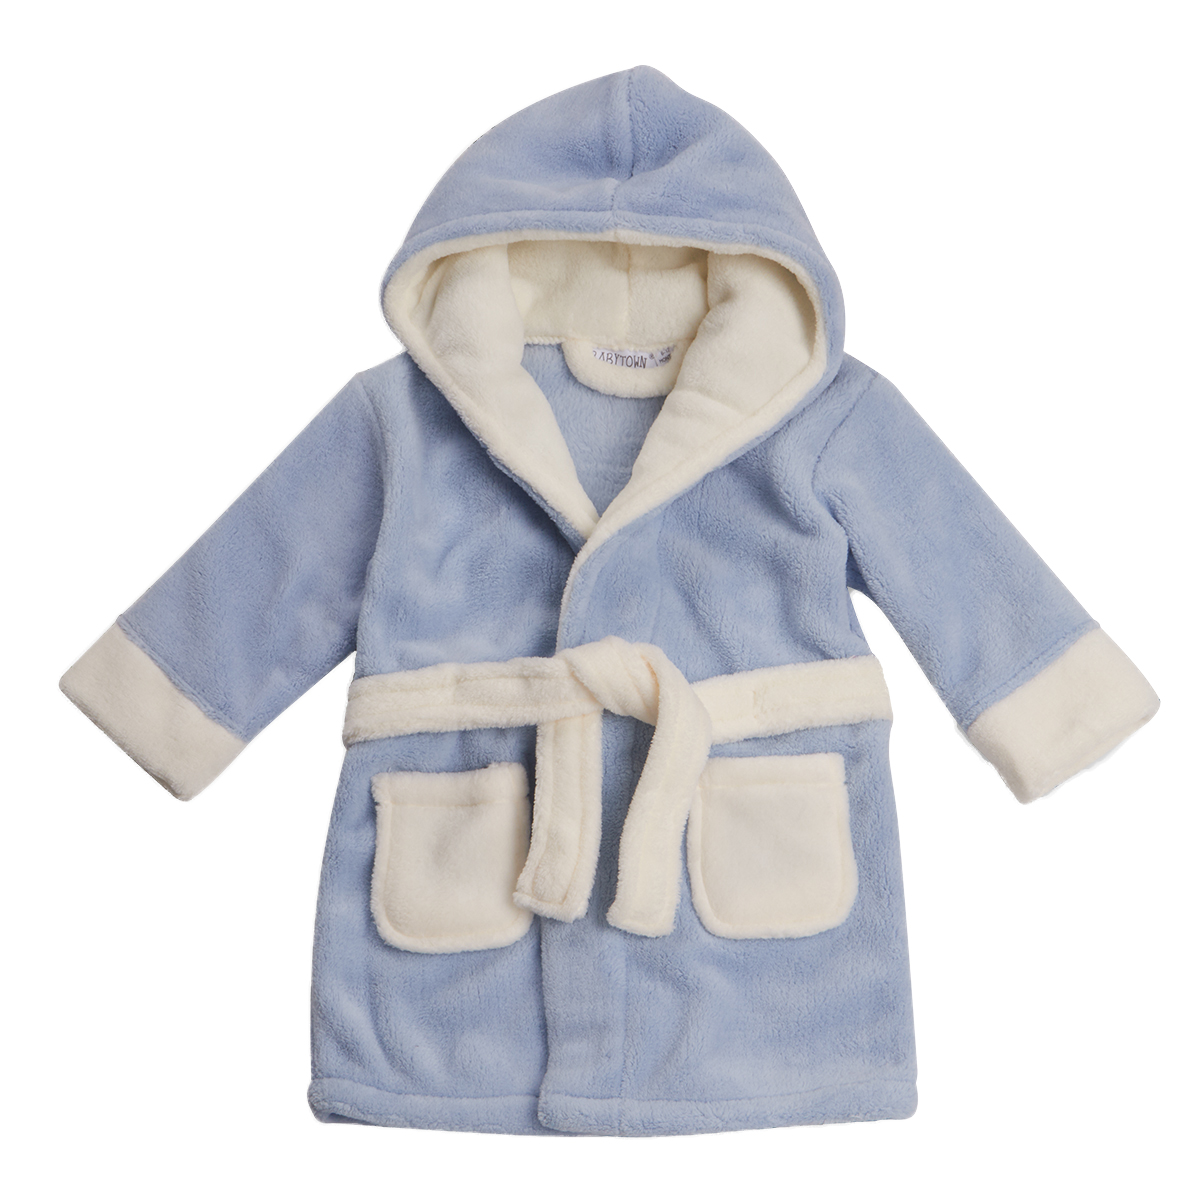 Bath Robes Bath time is a big part of spending quality time with your little one; keep your child cozy and dry with absorbent kids bathrobes designed for infants, toddlers and children.